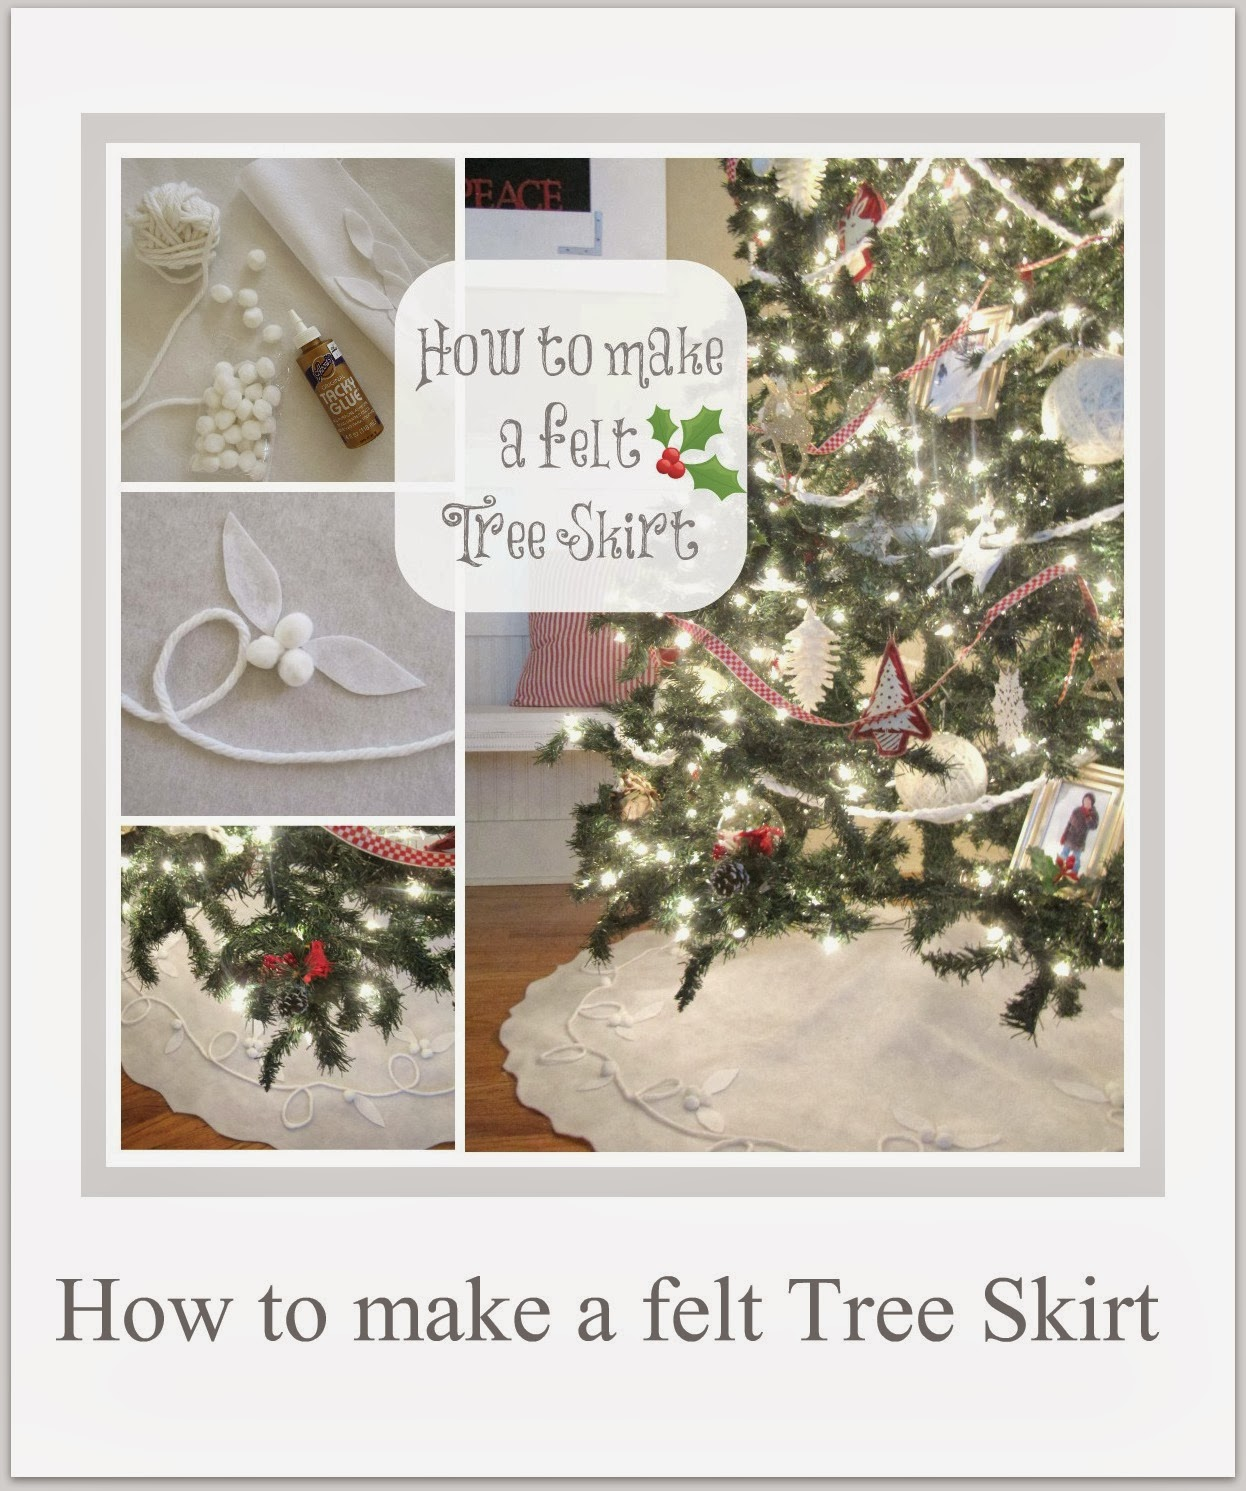 http://thewickerhouse.blogspot.com/2013/12/how-to-make-cute-felt-tree-skirt.html